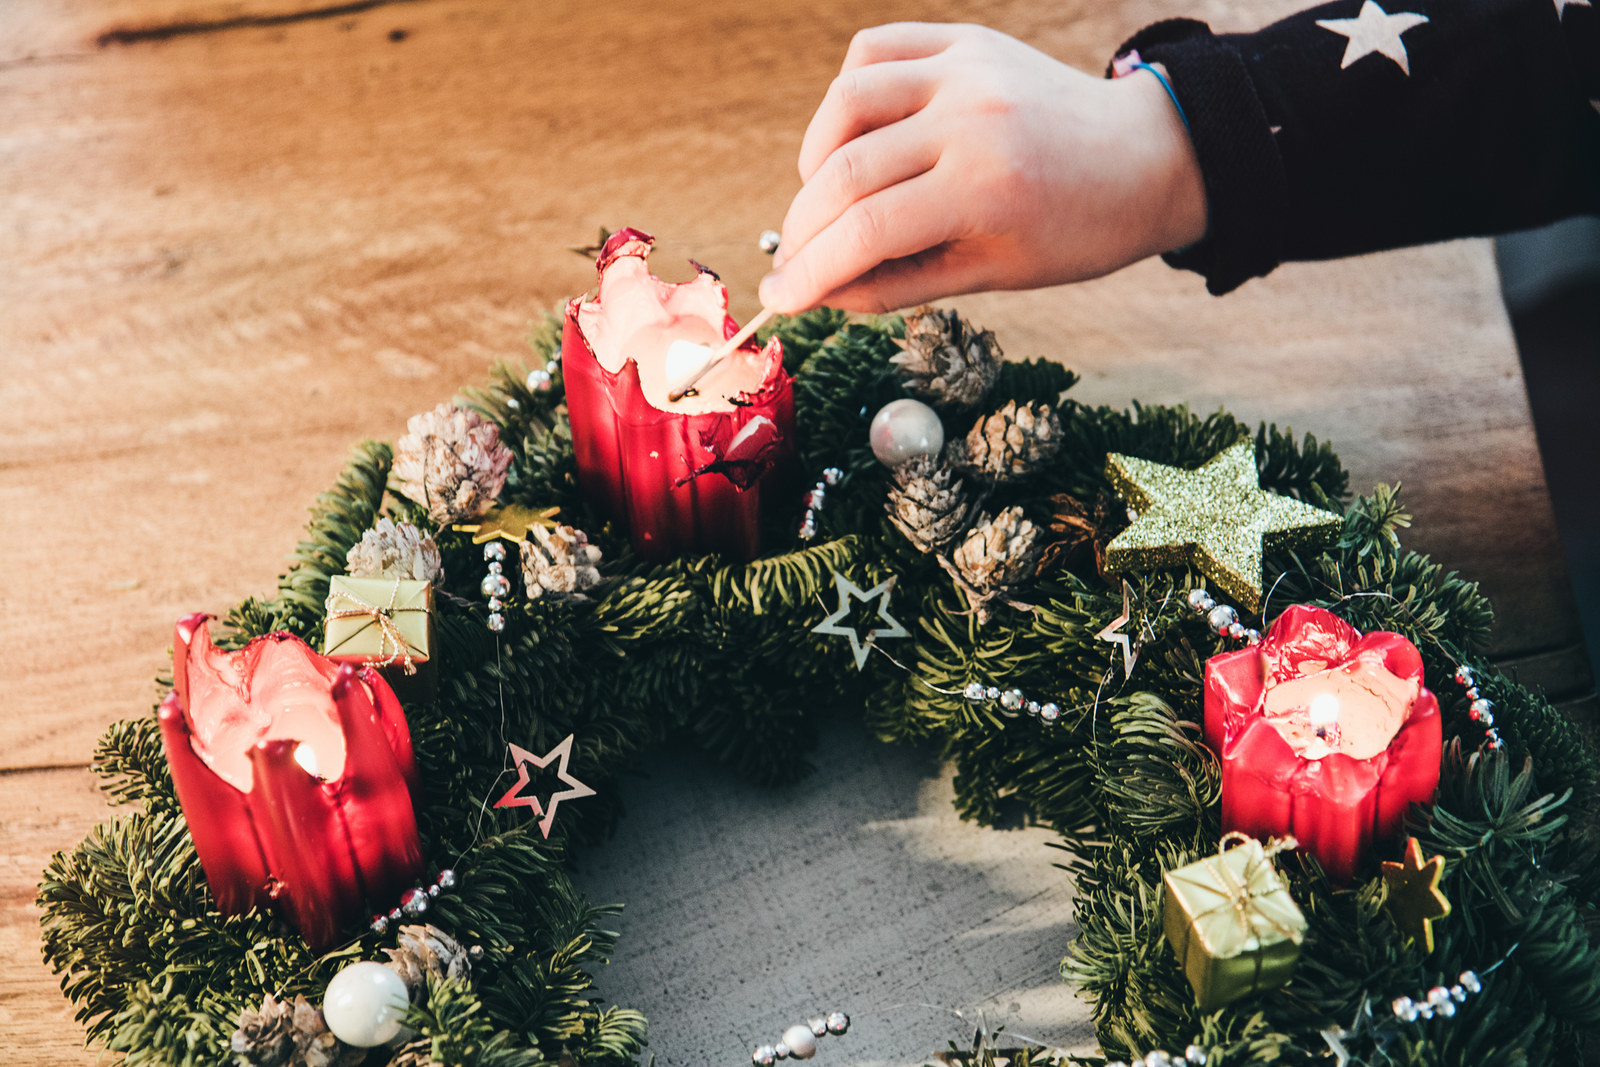 They usually sit on the living room table and are the perfect festive decoration for Advent season. Homemade wreaths are best as your neighbors will judge you heavily when they see you buying a *gasp* ready-made one at your local supermarket.